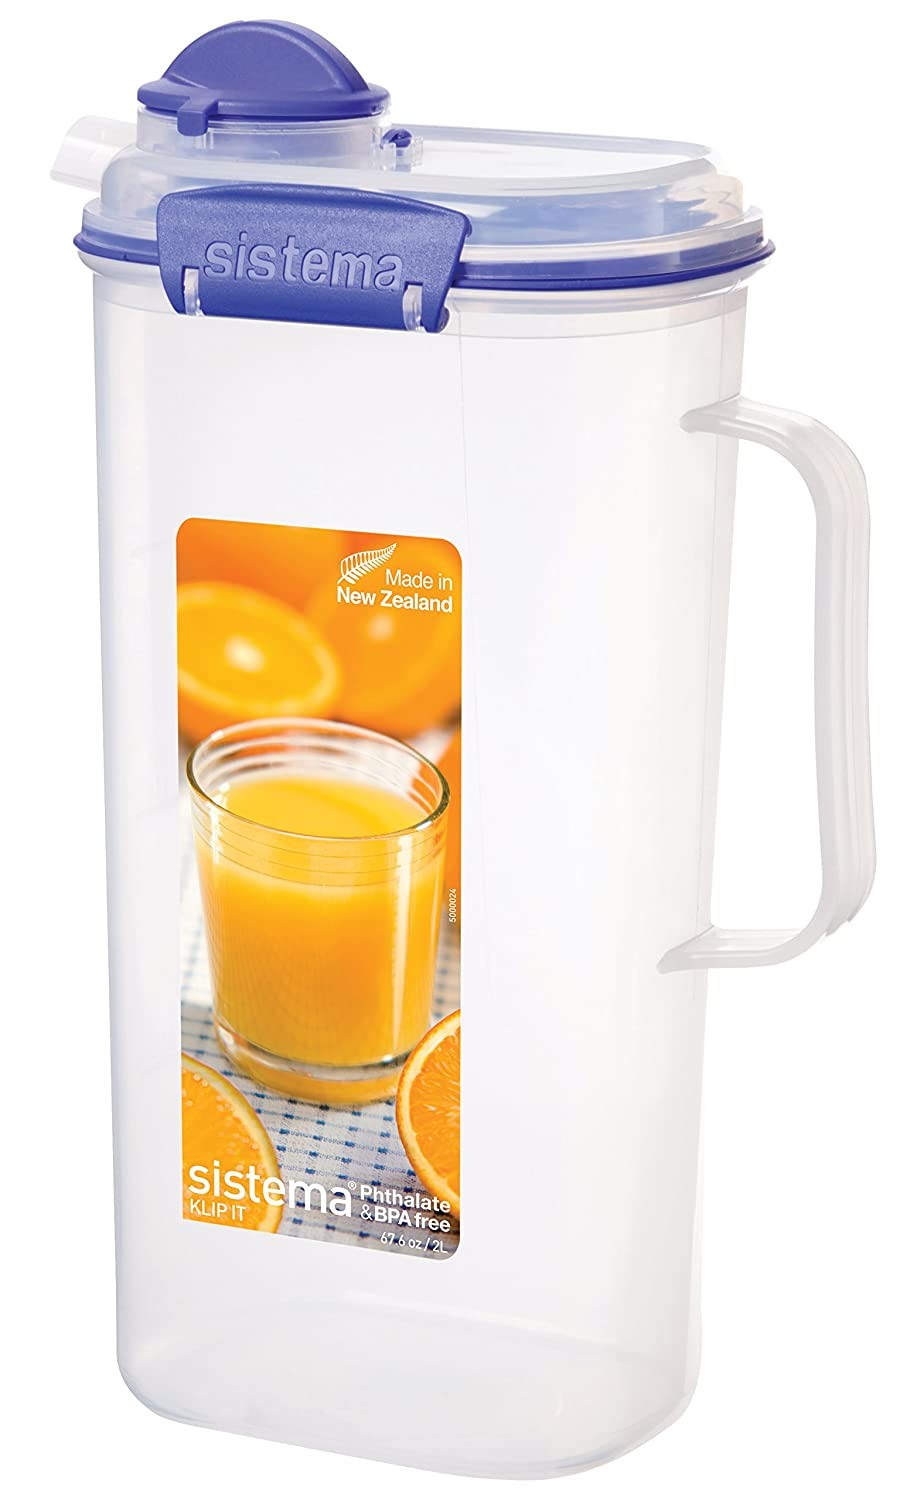 Sistema KLIP IT Utility Collection Juice Pitcher, 67.6 oz./2.0 L, Clear/Blue